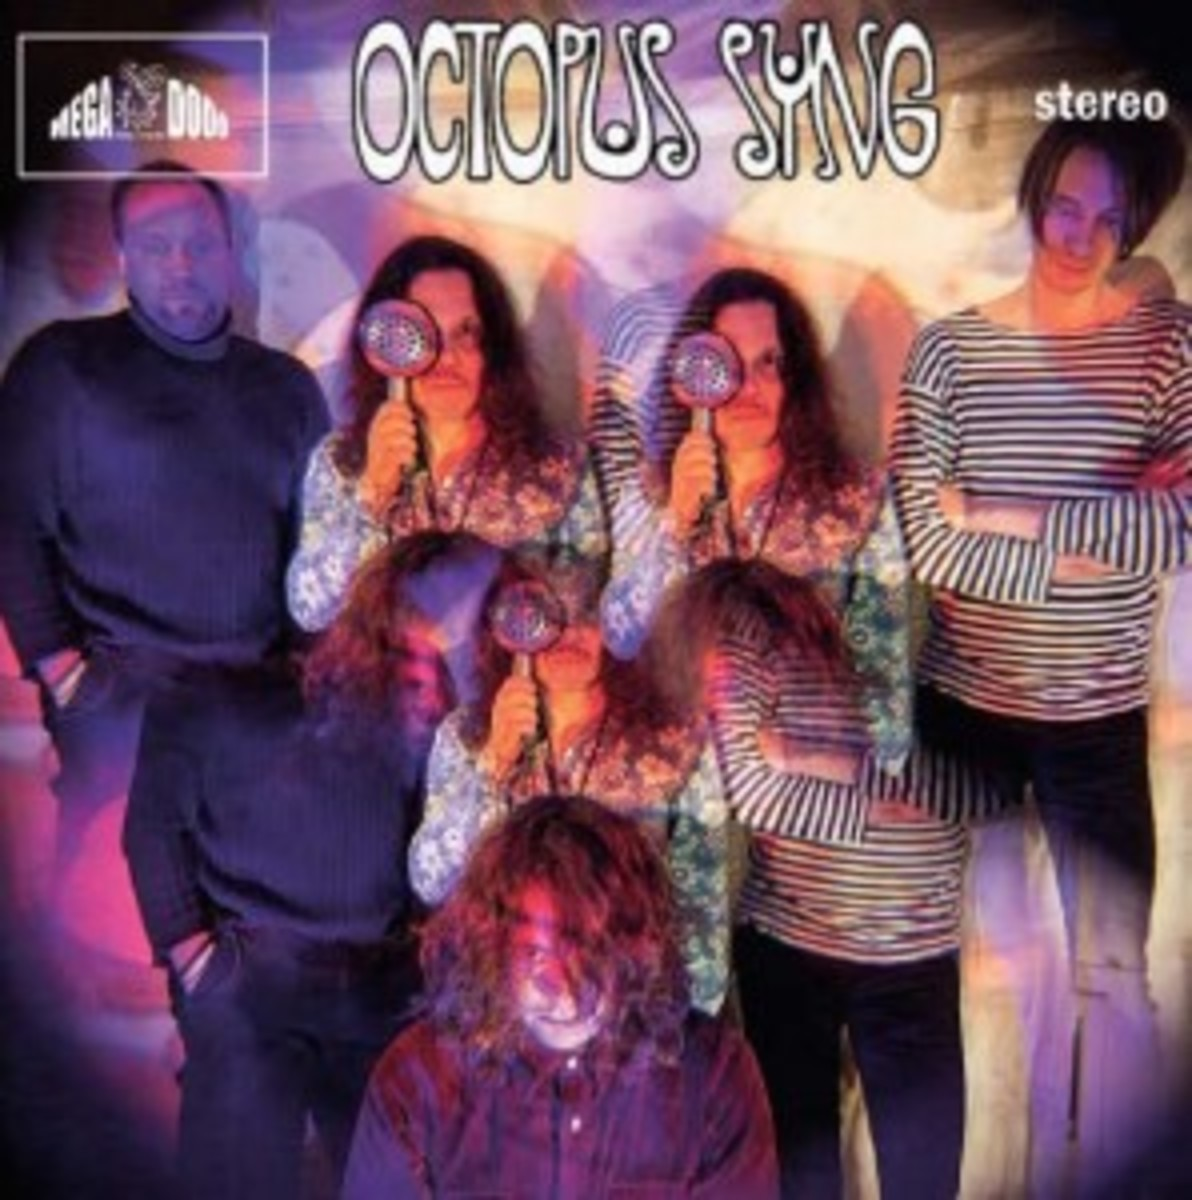 Finland's singing octopus saved their LP's title track for a Singles Club special